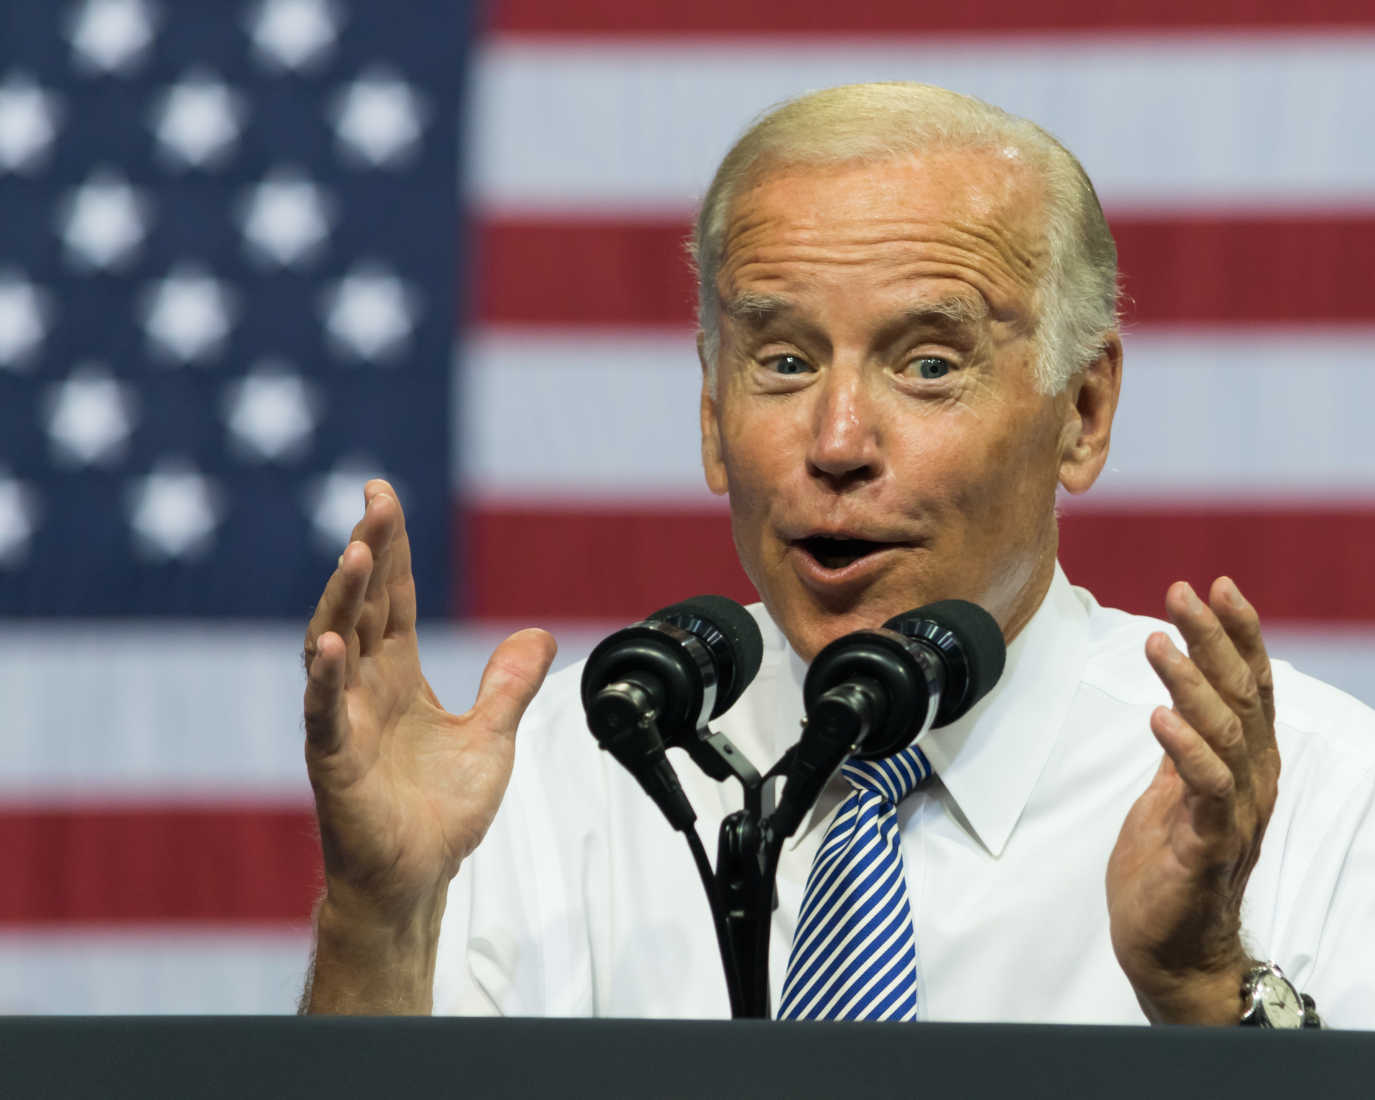 Joe Biden Says Not Everyone Is 'Entitled' to Own a Gun